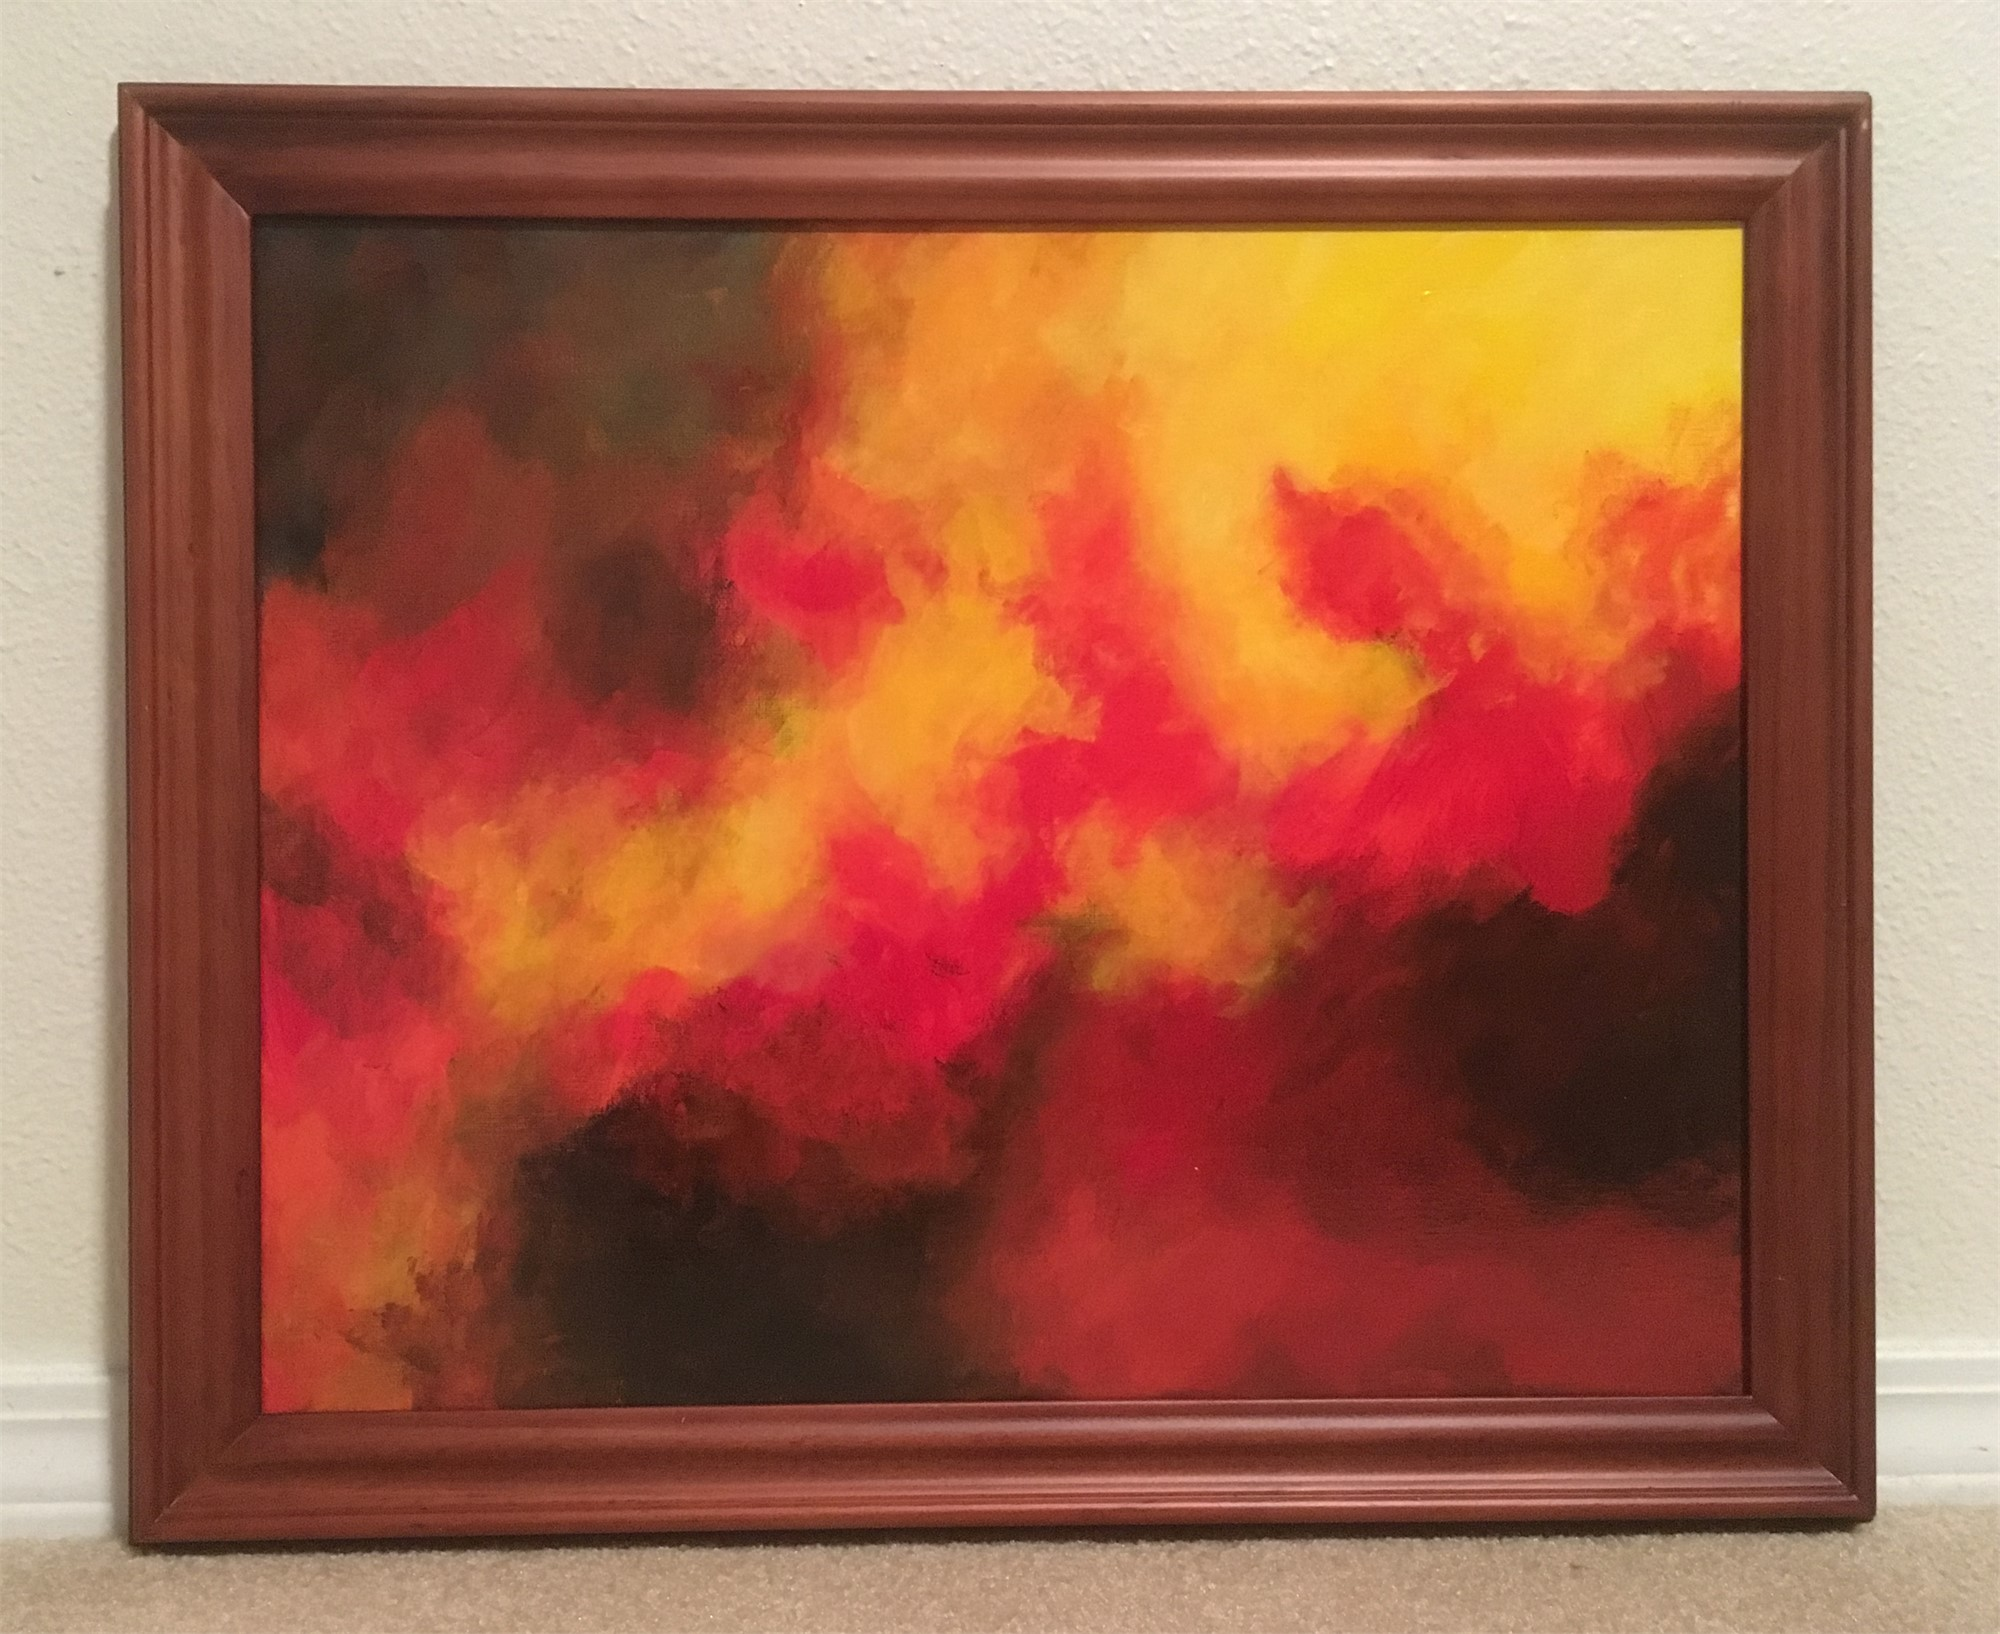 Firestorm by Carol Levy (McMinnville, OR)